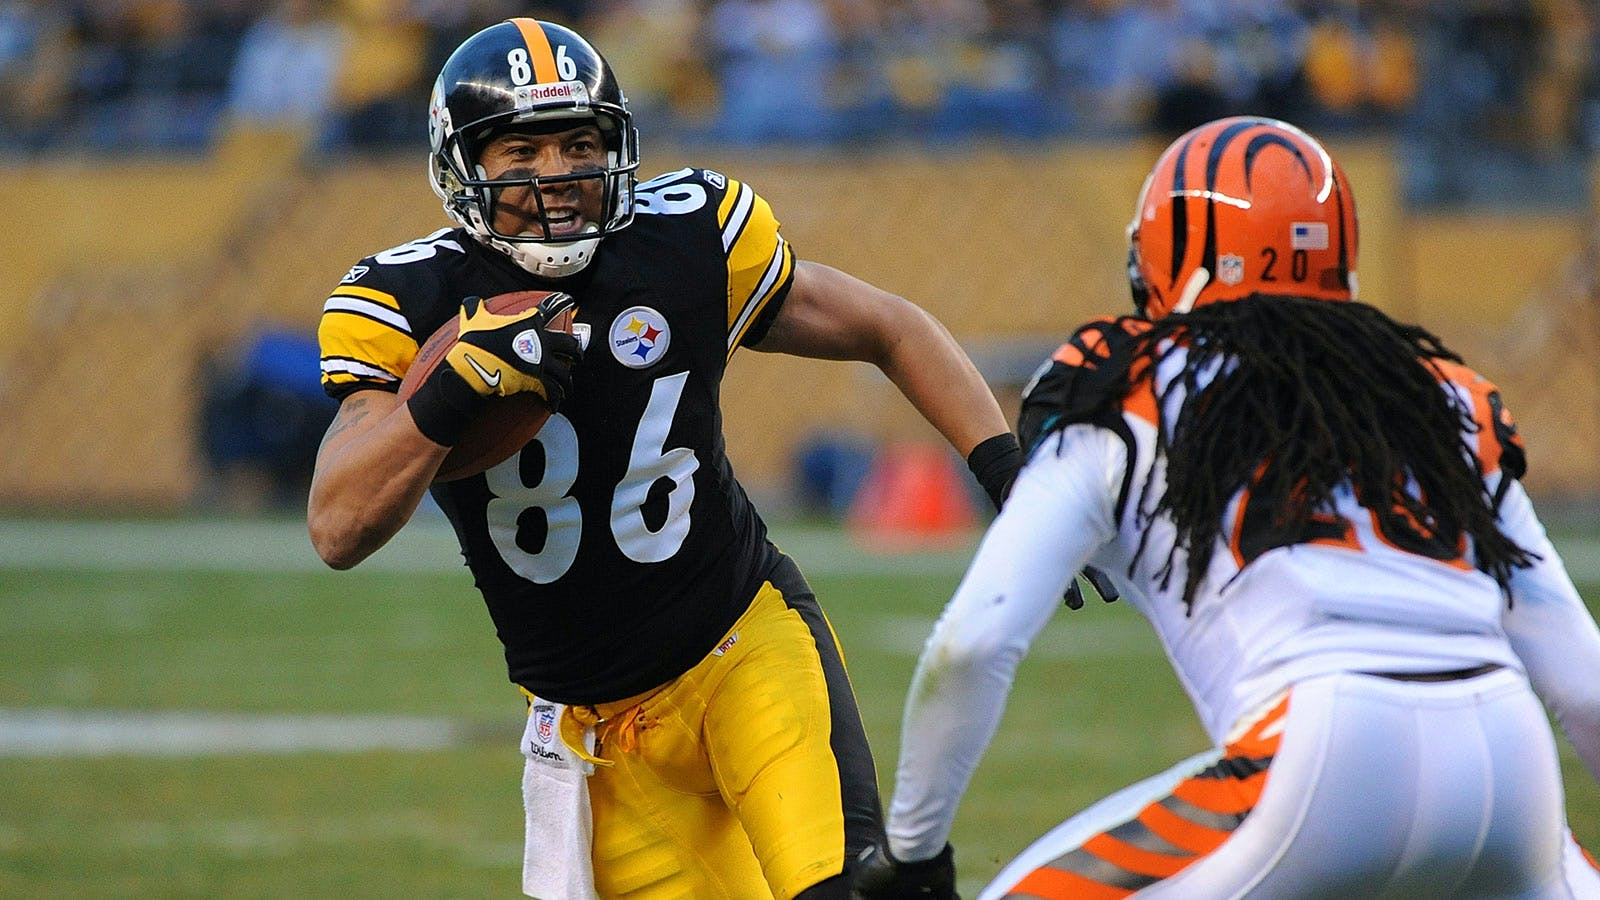 Hines Ward's Latest Catch: The Wine Bug